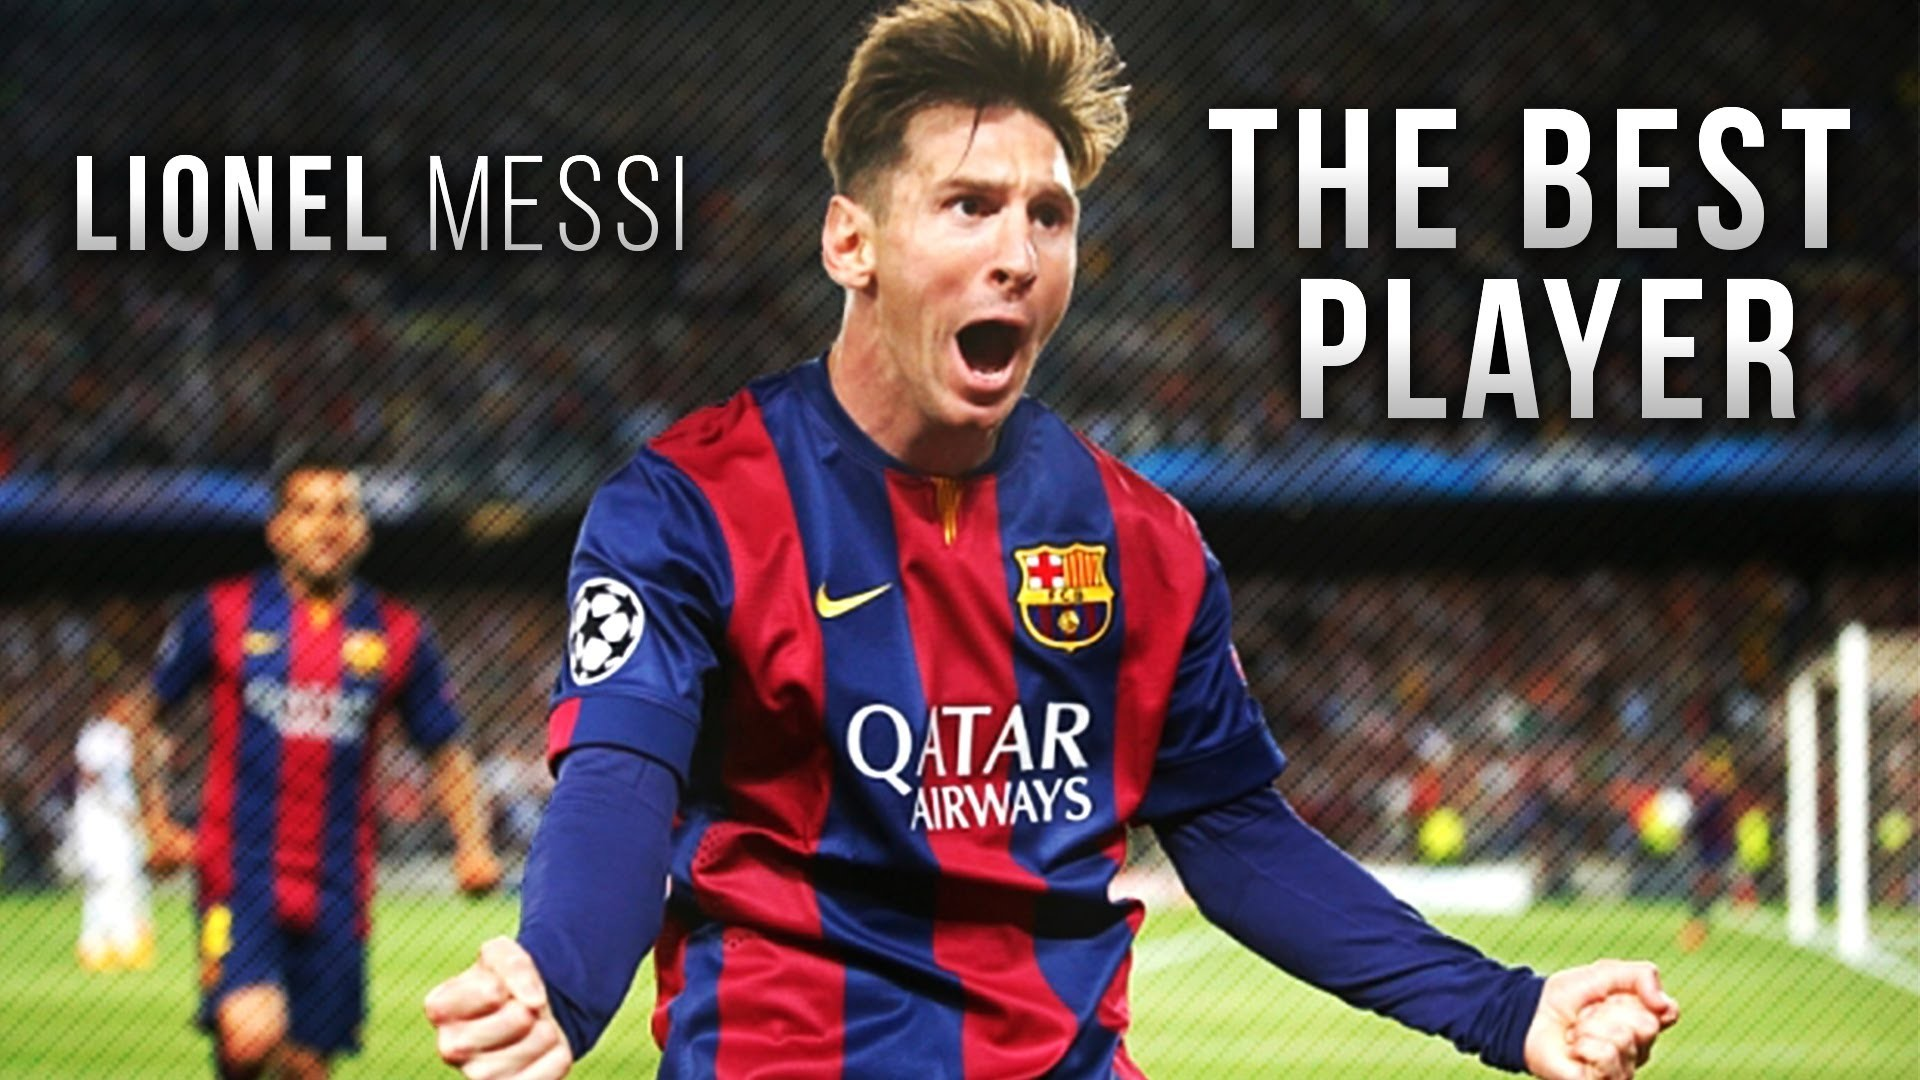 Lionel Messi 2018 Wallpapers 80 images 1920x1080